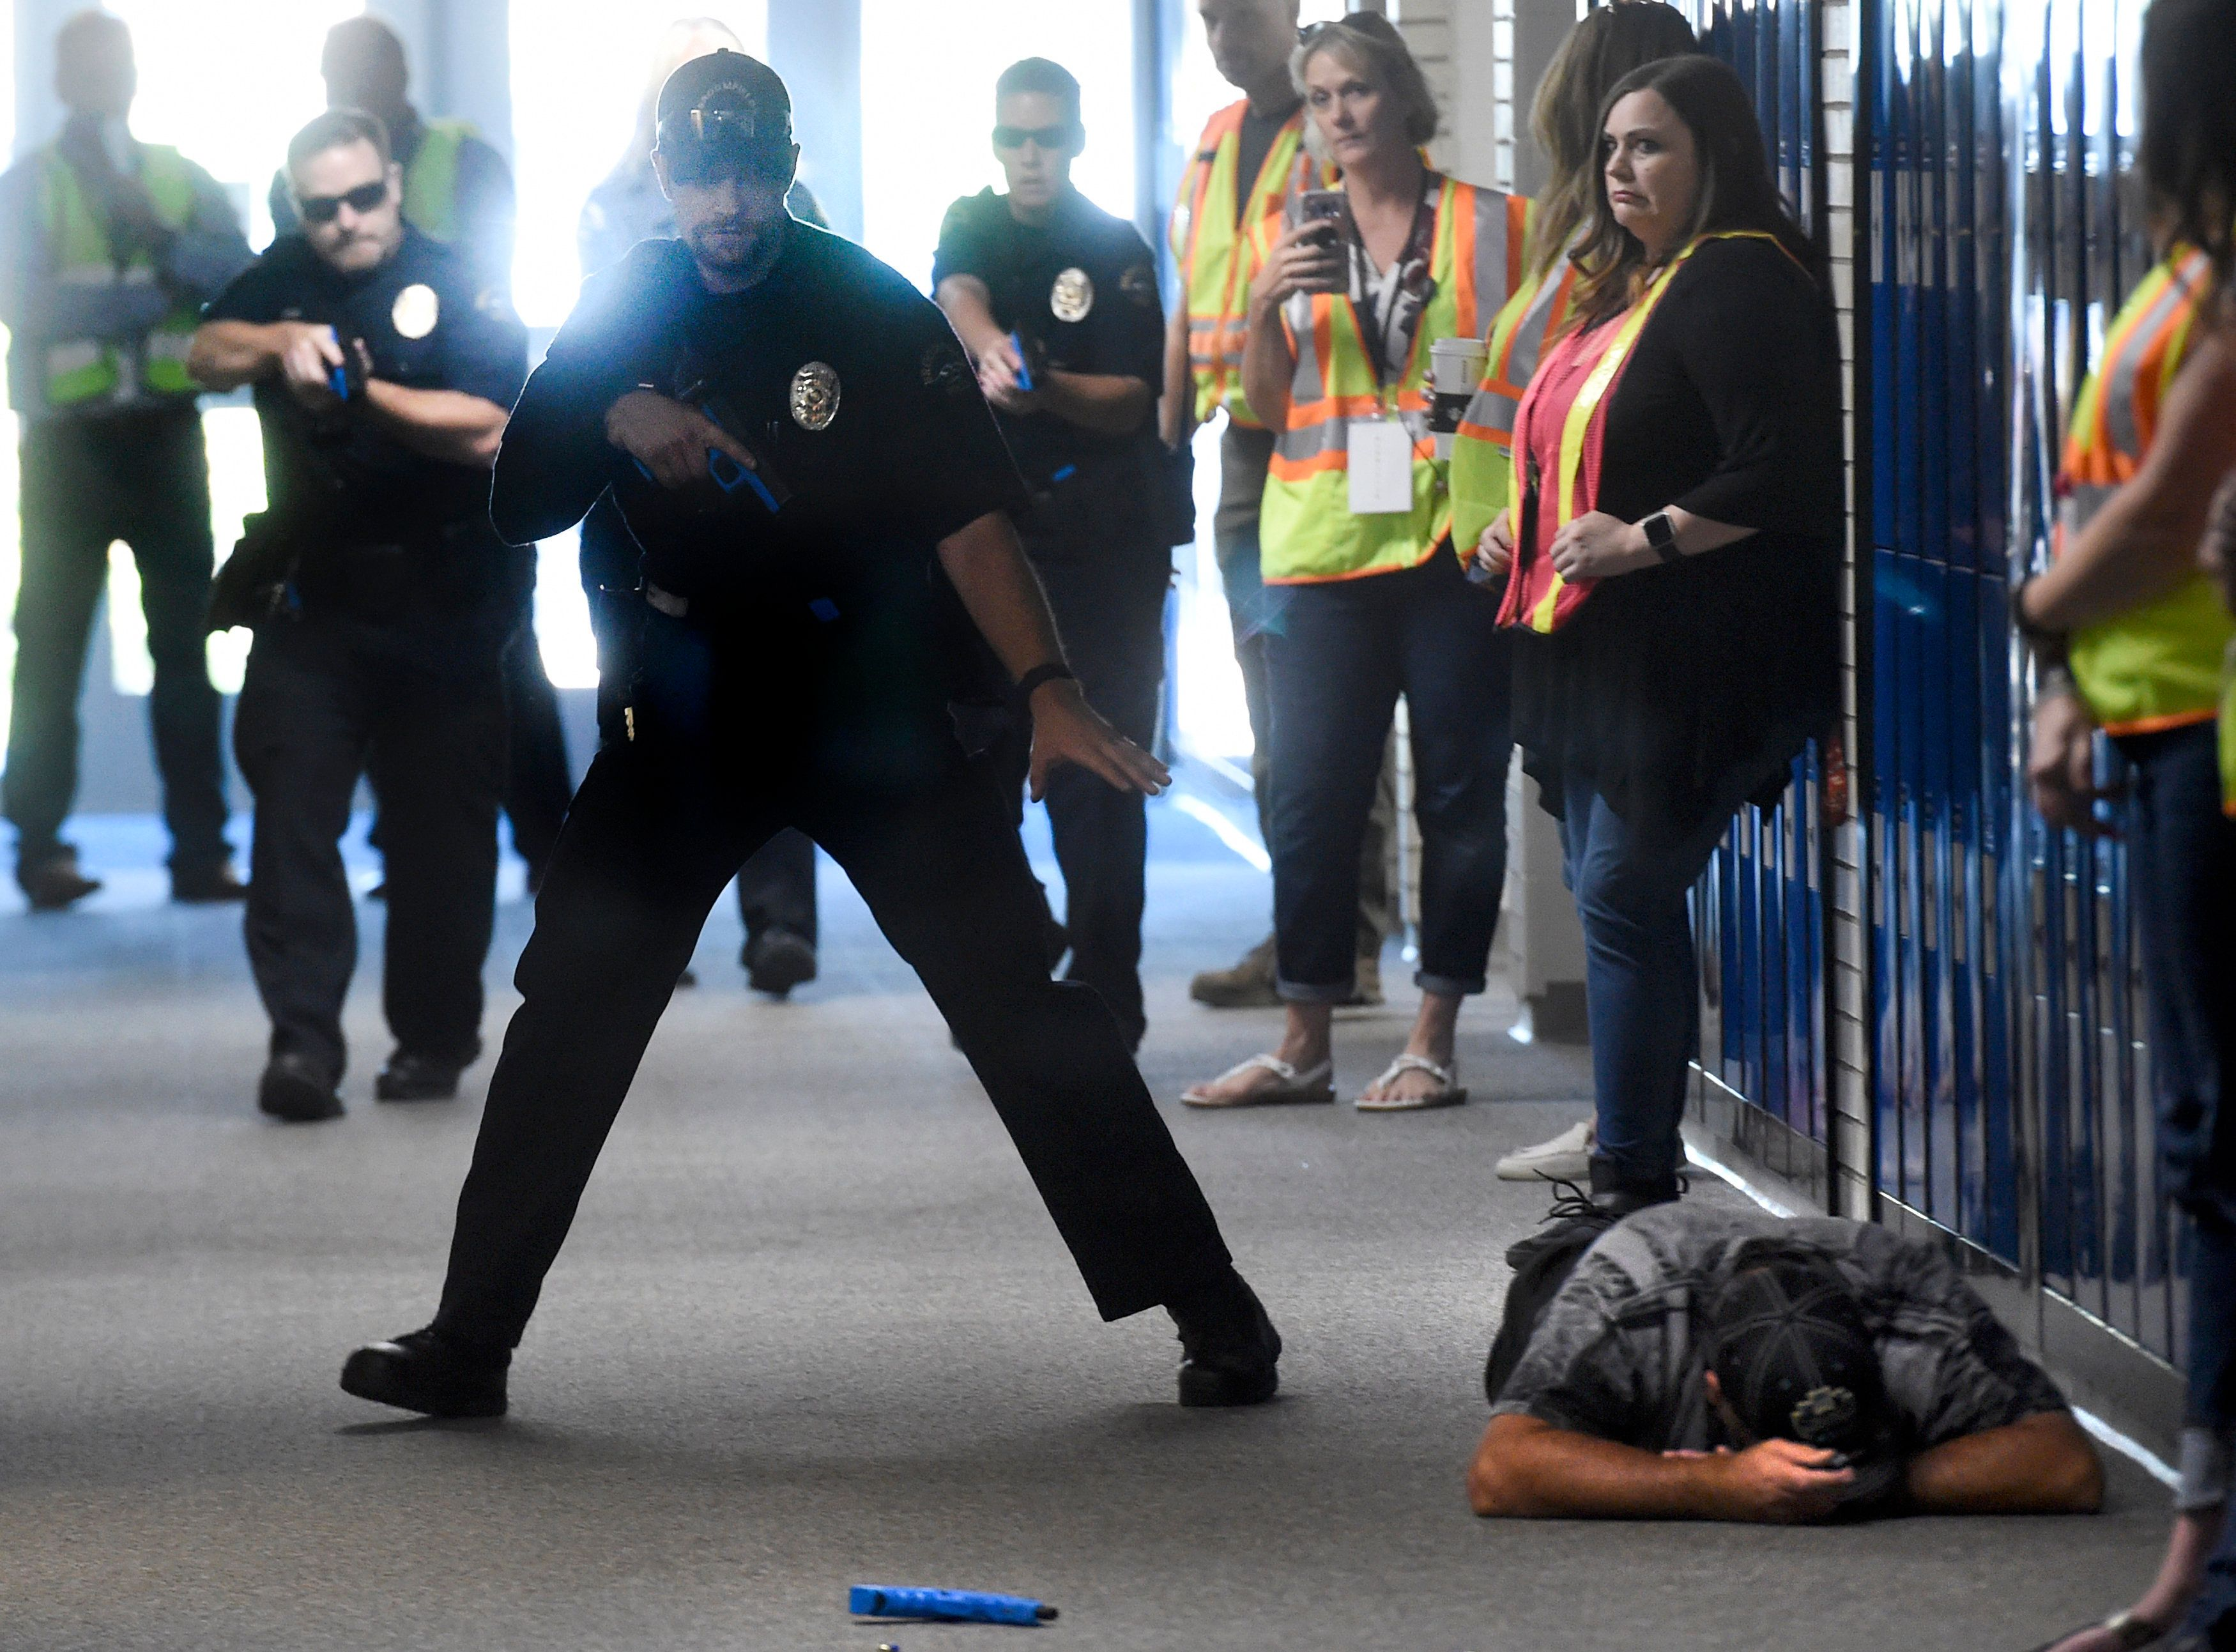 Teachers Reportedly Shot 'Execution Style' With Pellets In Active Shooter Drill